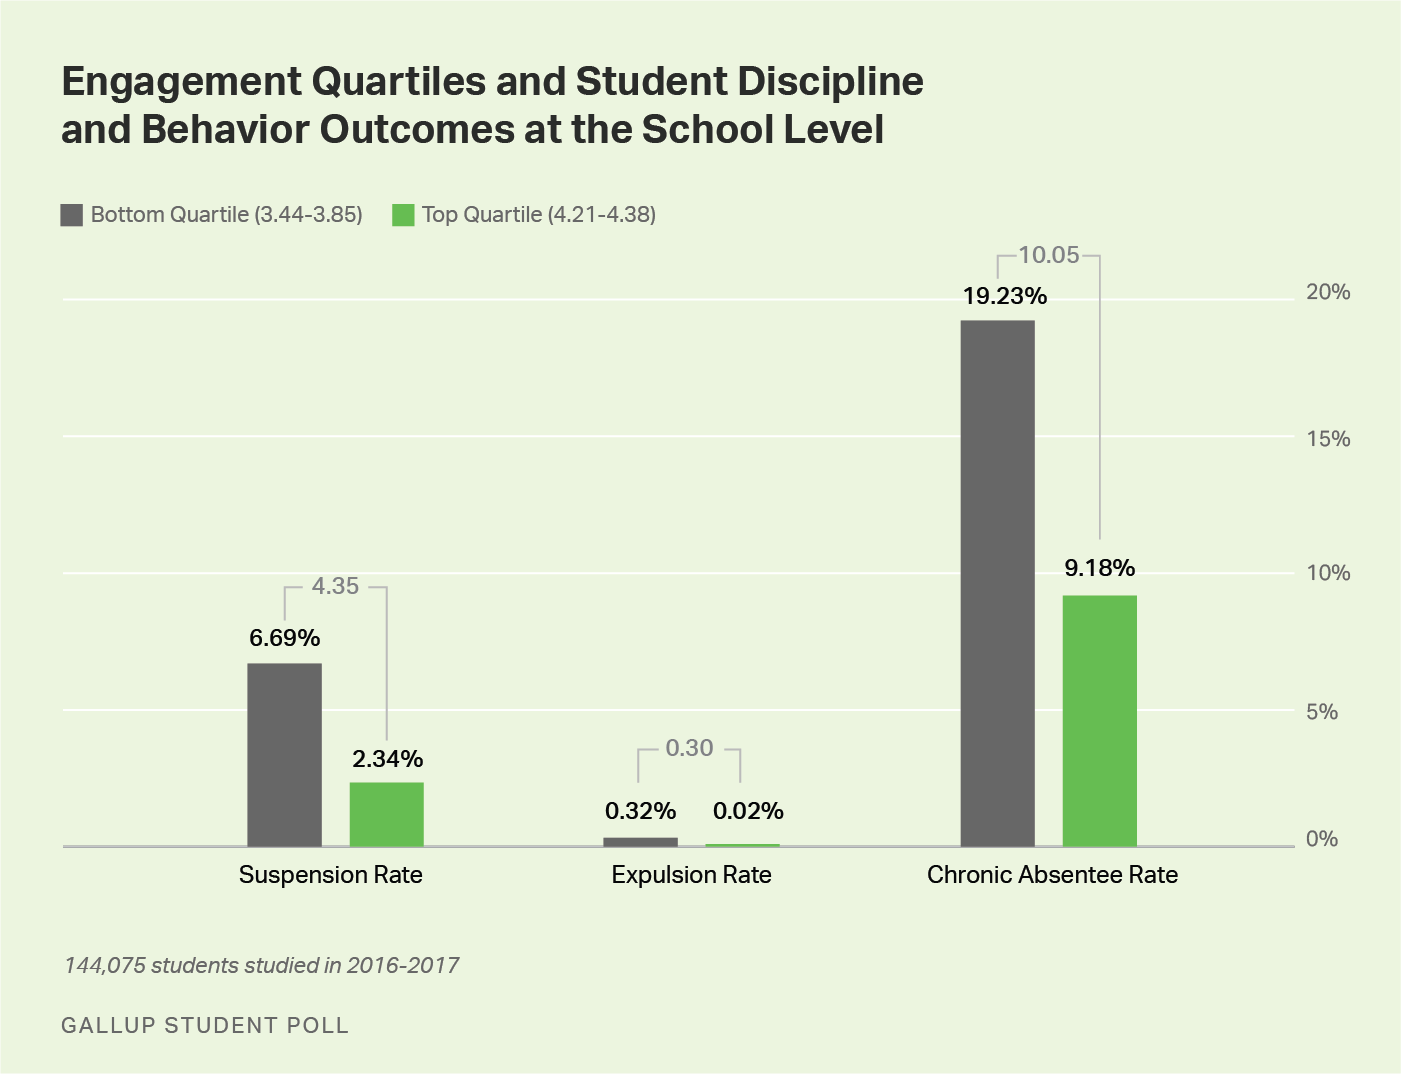 Line graph. Suspension rates, expulsion rates and chronic absentee rates are significantly lower among students in the top quartile of engagement compared with those in the bottom quartile.